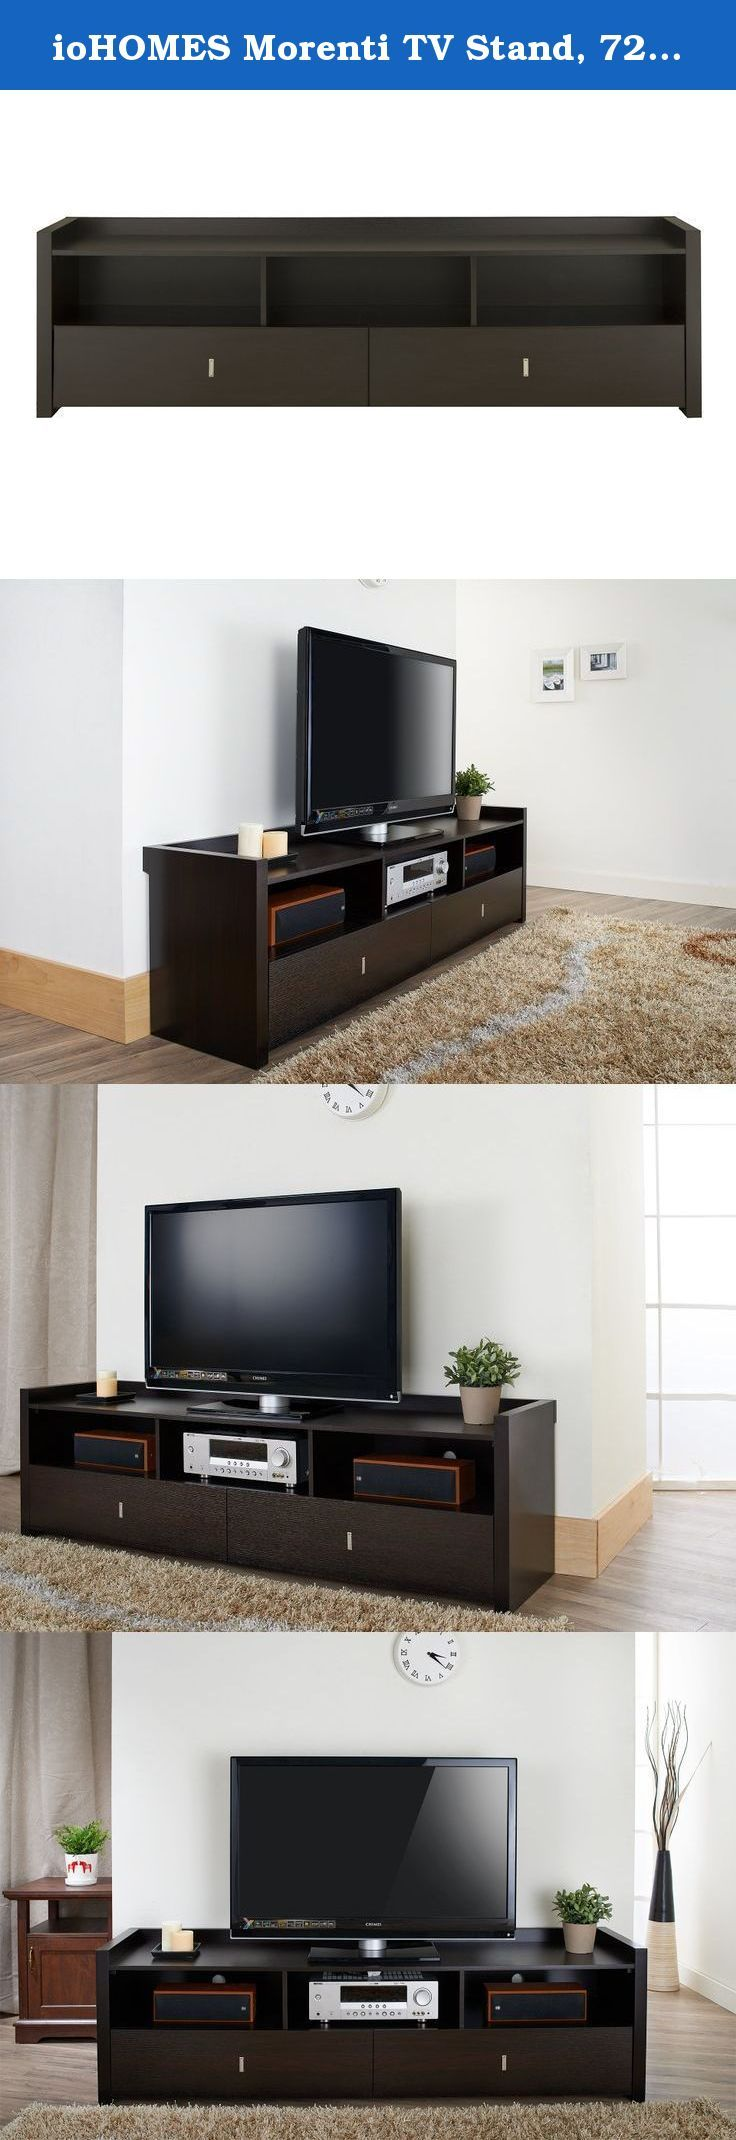 """ioHOMES Morenti TV Stand, 72-Inch, Cappuccino. The Morenti 72"""" TV Stand is a contemporary gem for your modern décor. The roomy 72 inch tabletop can accommodate most large television sets and the raised trim ensures items stay in place. Three storage compartments house your electronic devices and rear wiring access provides another user-friendly feature. Two extra large drawers on gliders provide easy access storage for DVDs, video games, remote control units and others. Sturdy wooden..."""